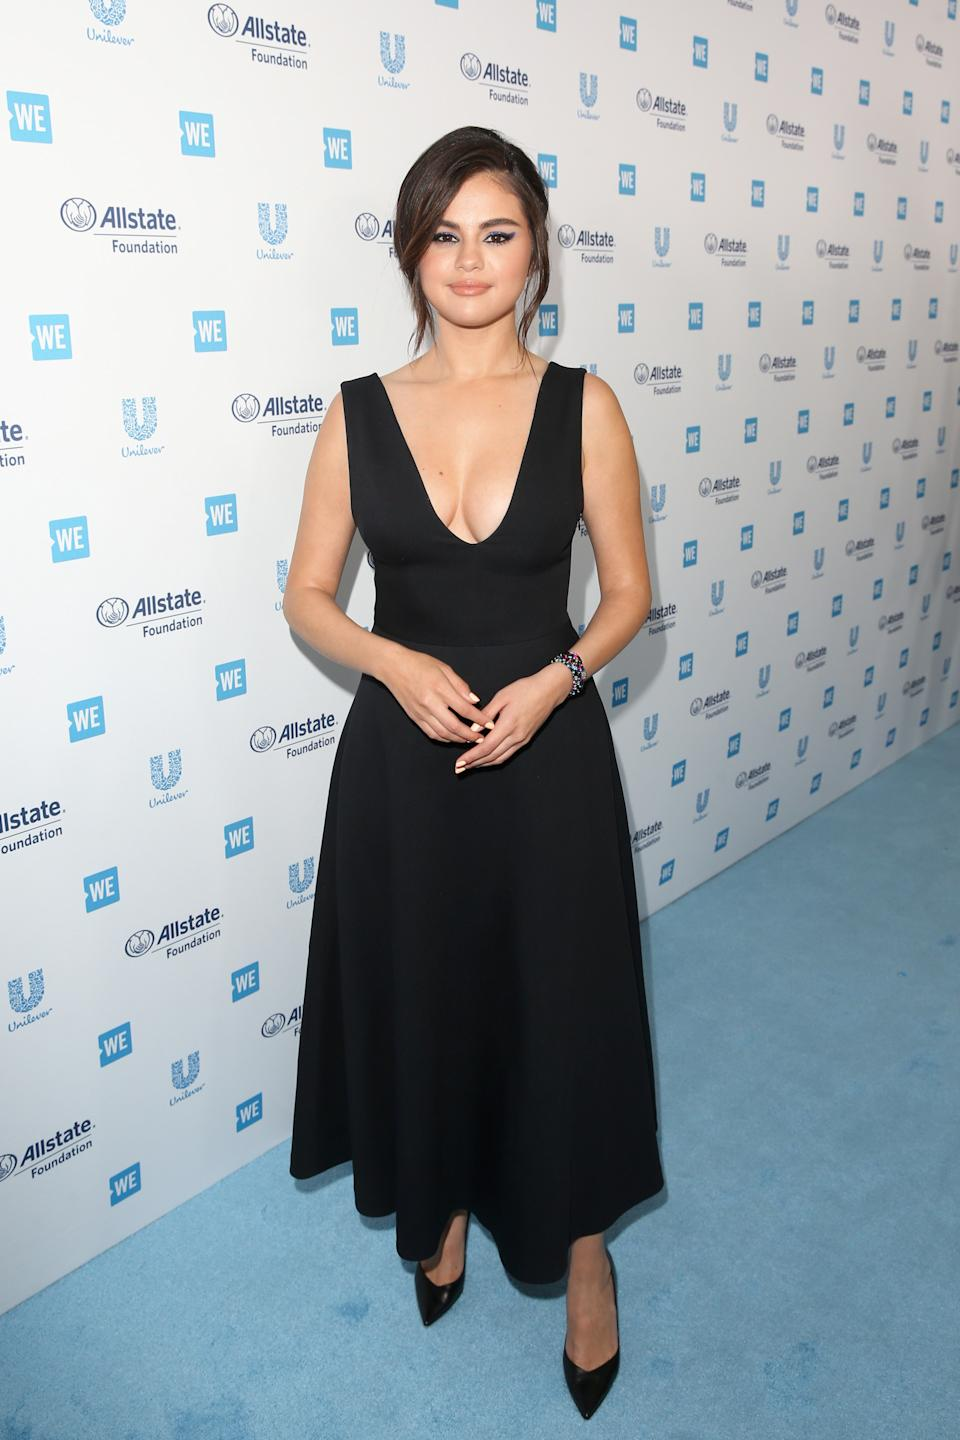 INGLEWOOD, CALIFORNIA - APRIL 25: Selena Gomez attends WE Day California at The Forum on April 25, 2019 in Inglewood, California. (Photo by Jesse Grant/Getty Images for WE Day)